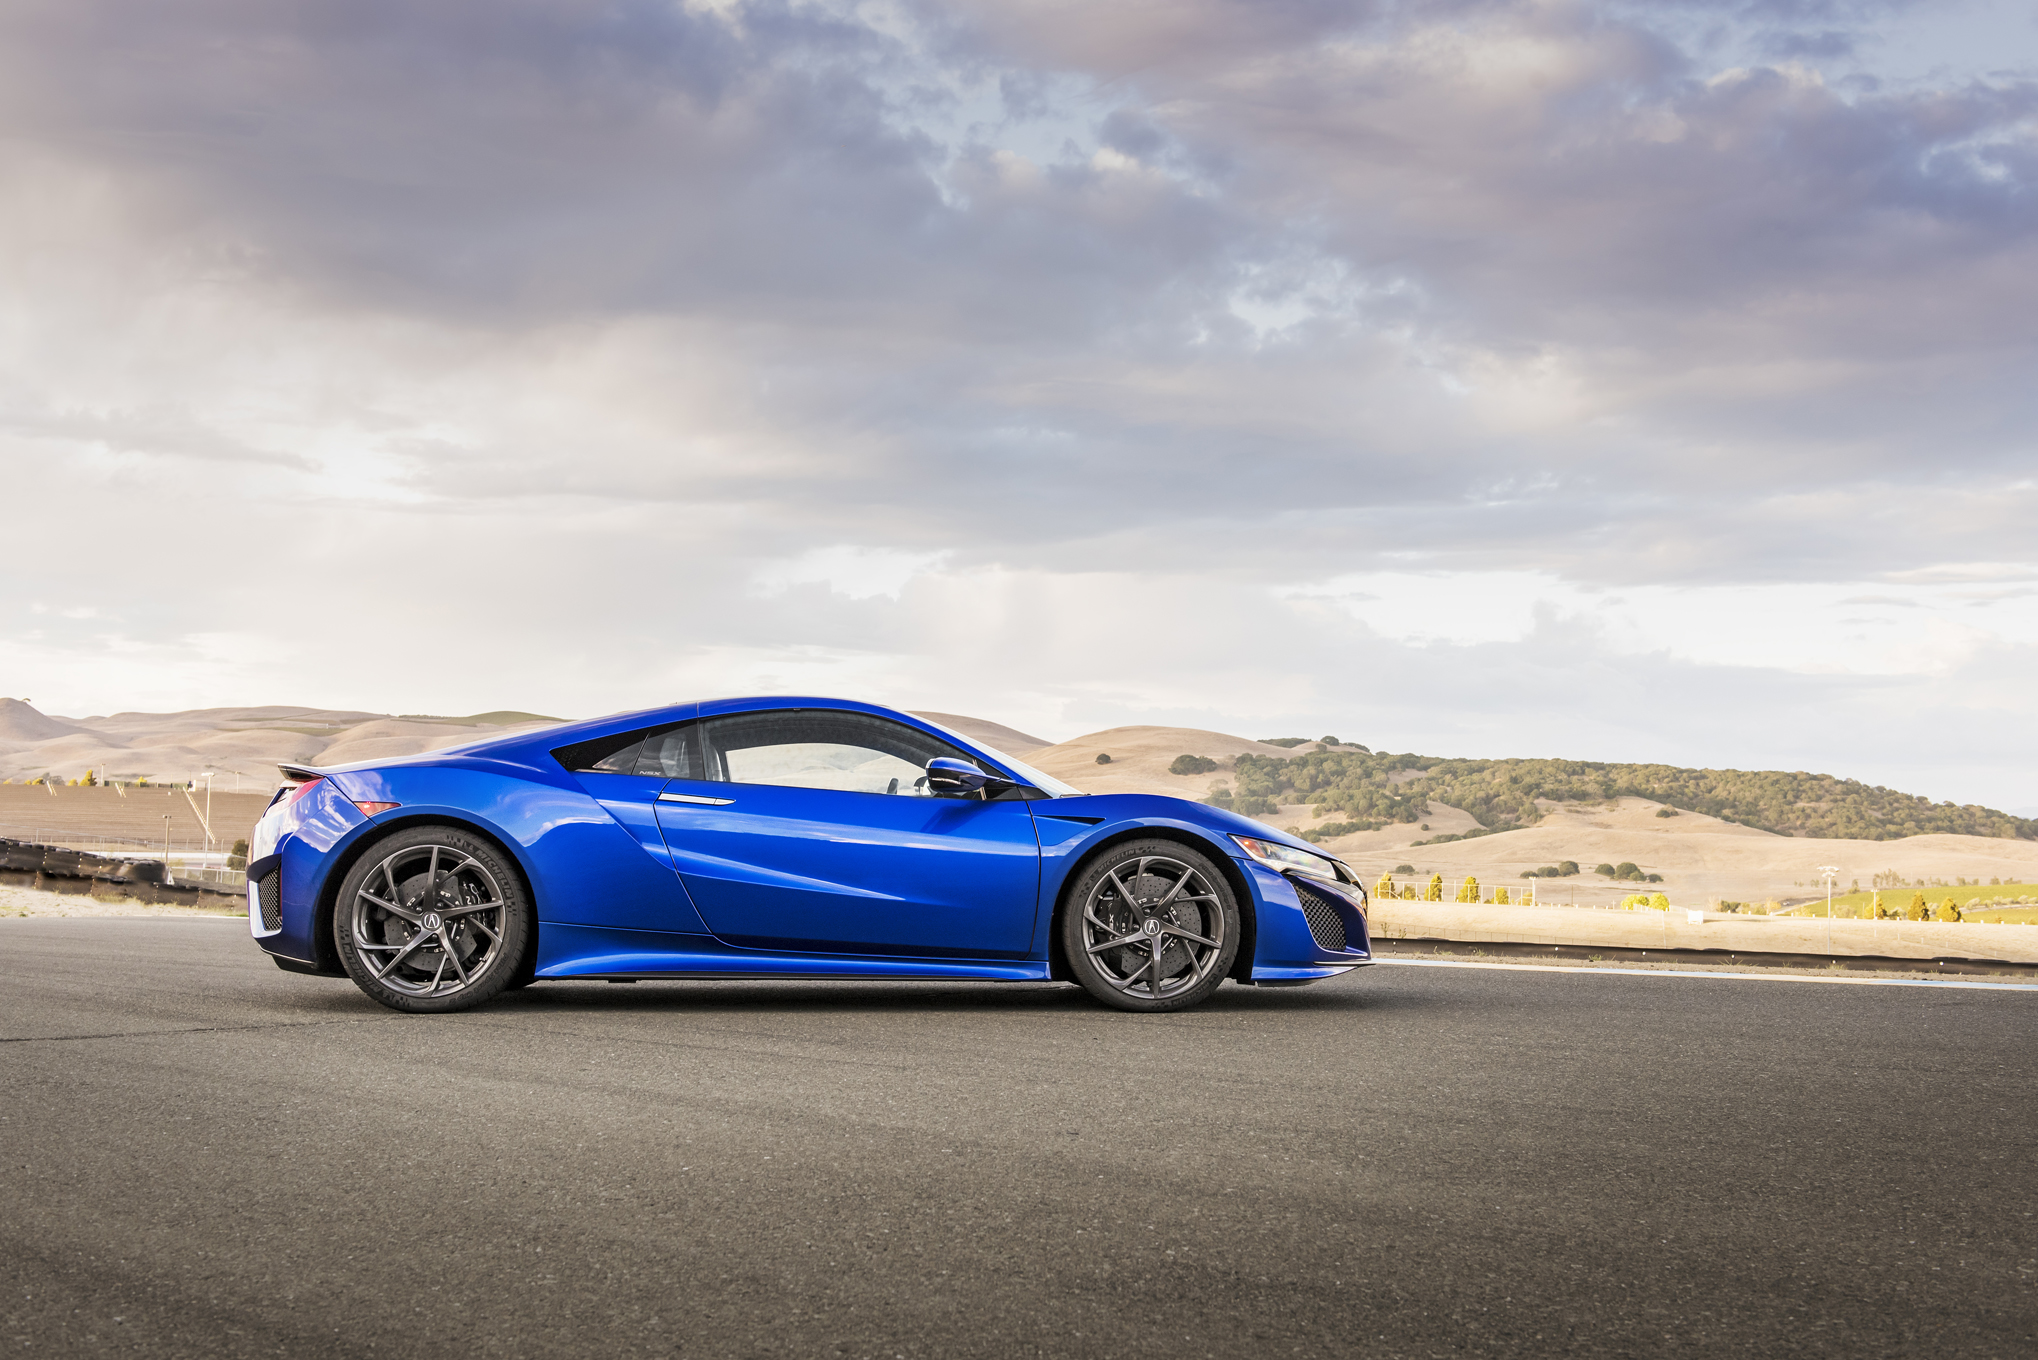 2017 Acura Nsx First Drive Reviews Stun World With Definitive Supercar Automotive Addicts